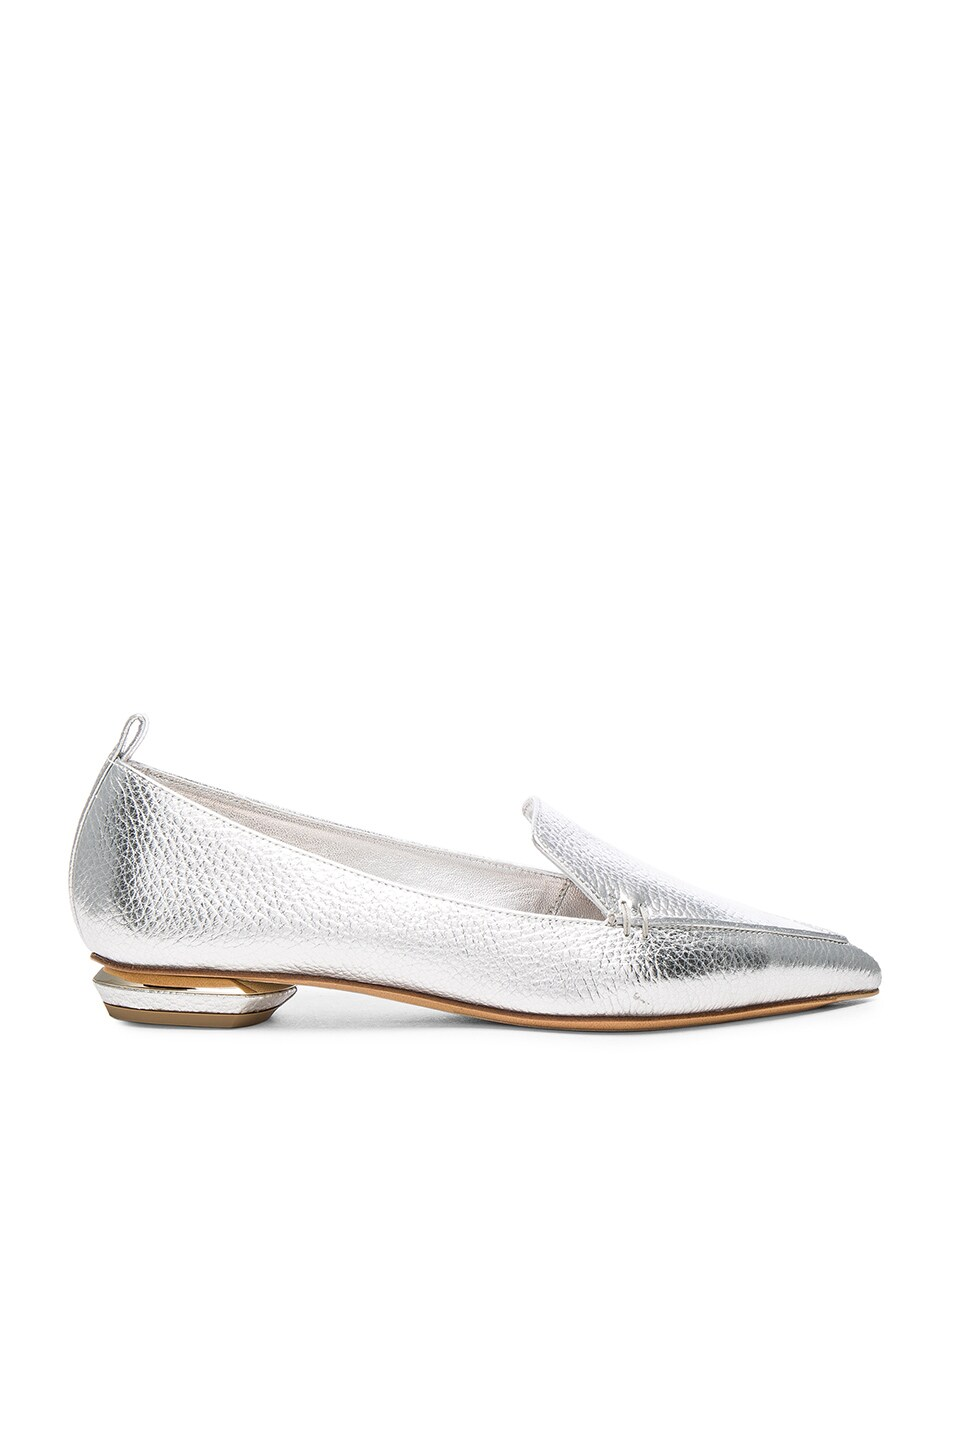 Image 1 of Nicholas Kirkwood Leather Beya Loafers in Silver